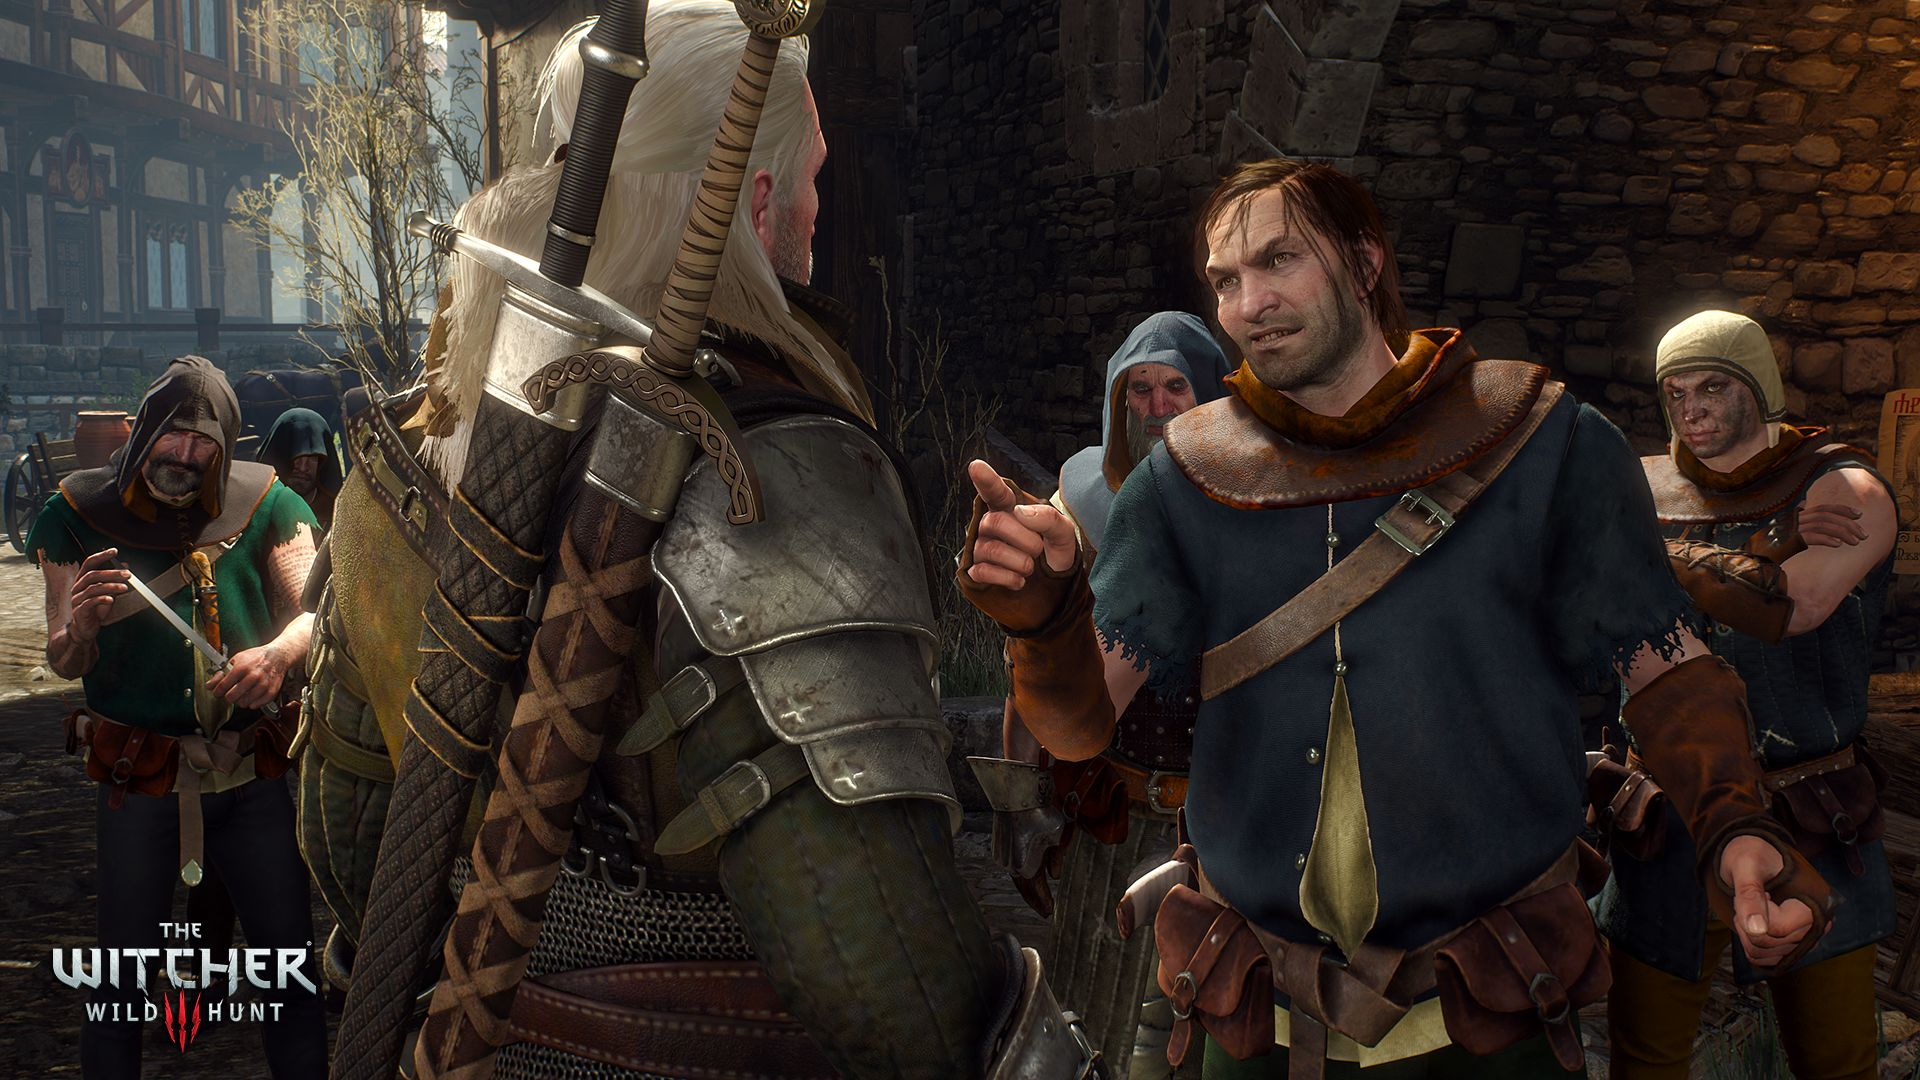 The Witcher 3 S Latest Build Runs At 1080p On Ps4 900p On Xbox